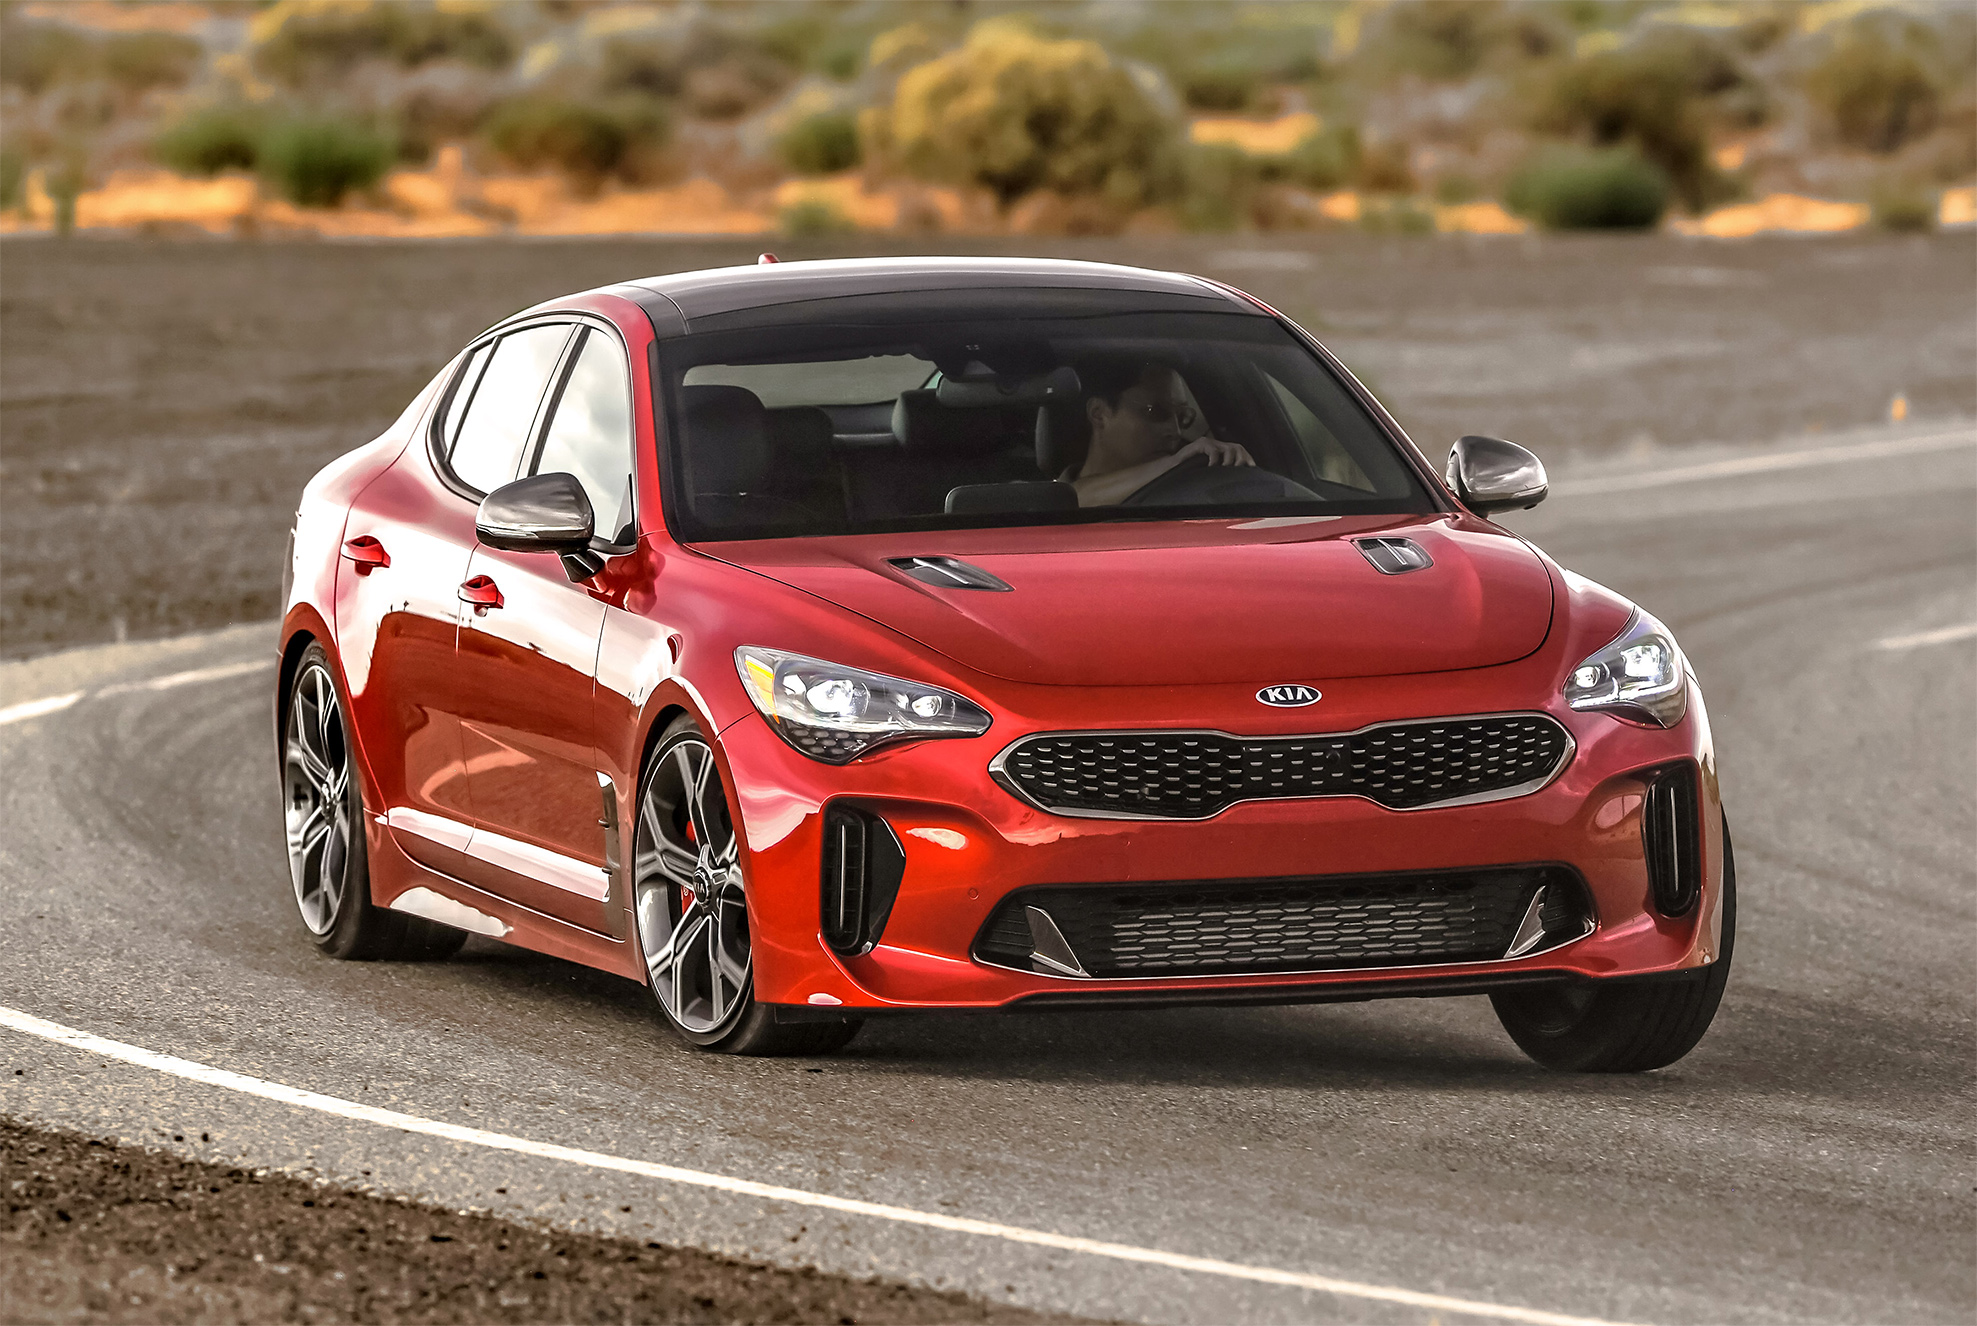 Kia Stinger Super Bowl ad Features Steven Tyler and F1 Champ Emerson